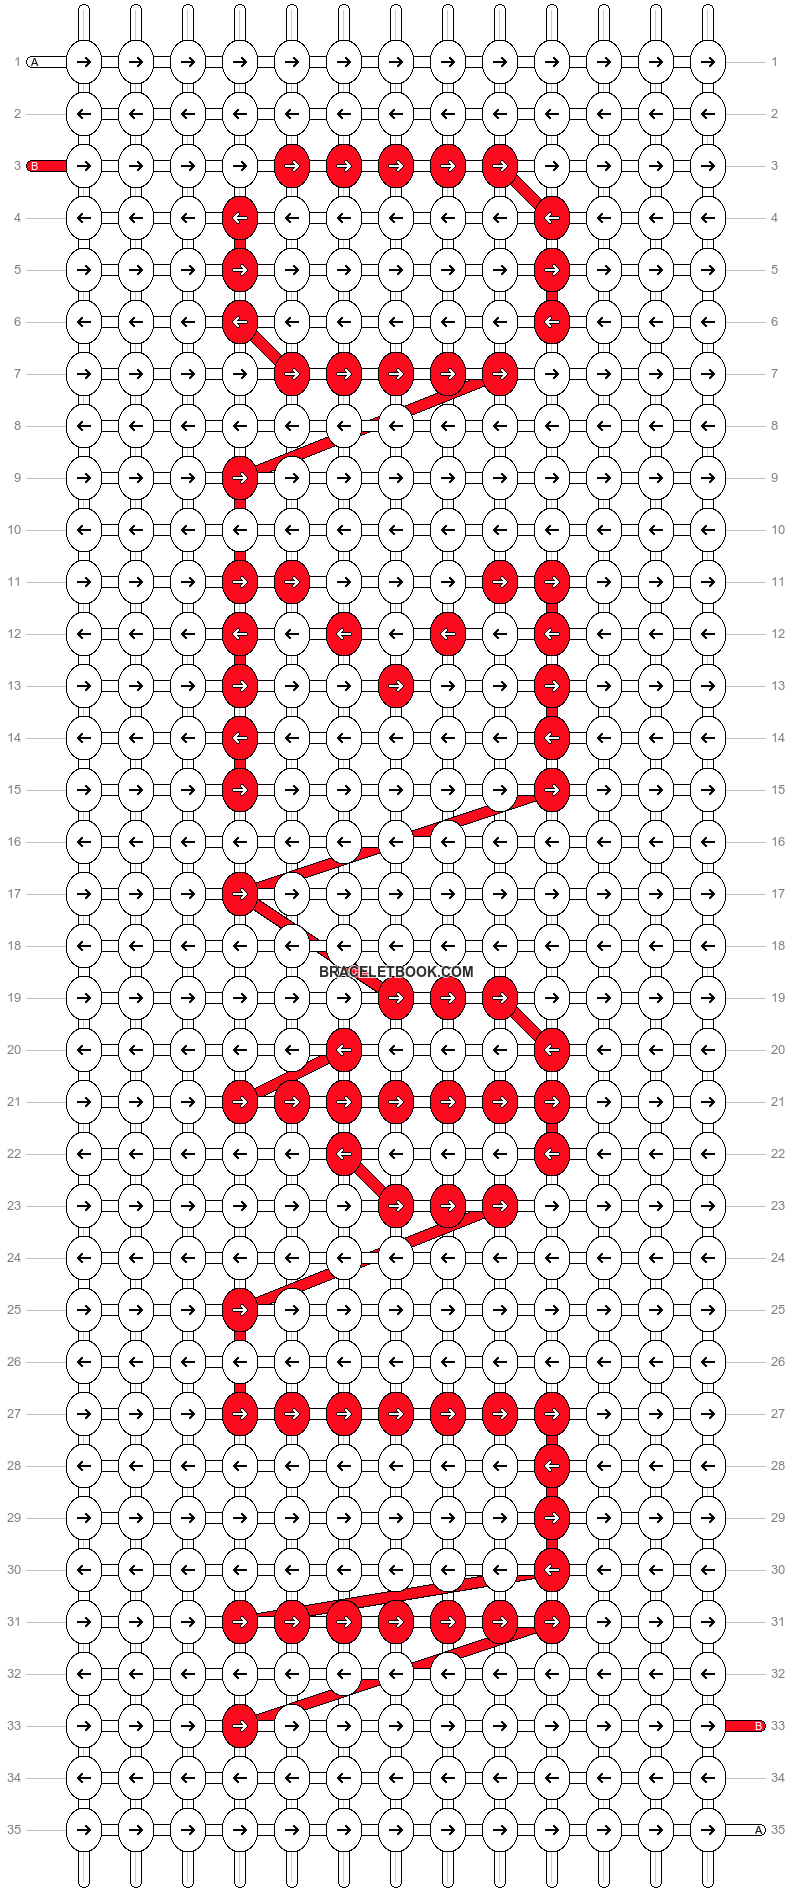 Alpha Pattern #20364 added by Stavroulaa